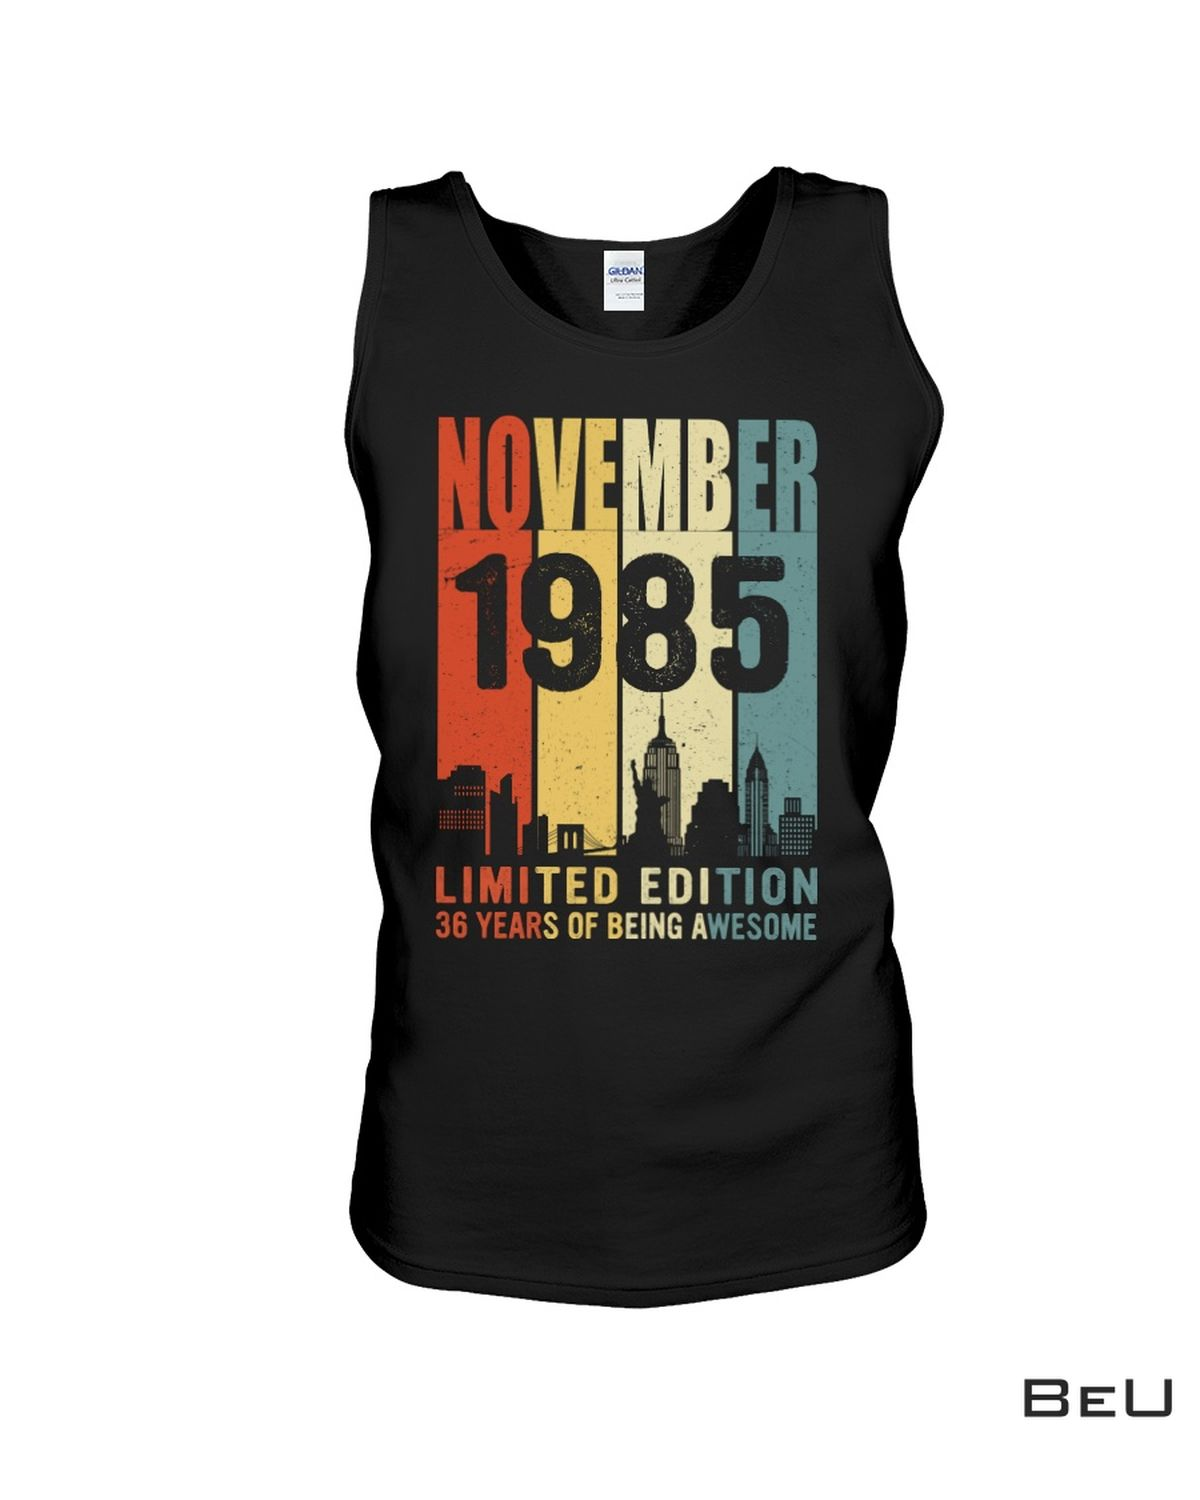 Vibrant November 1985 Limited Edition 36 Years Of Being Awesome Shirt, hoodie, tank top